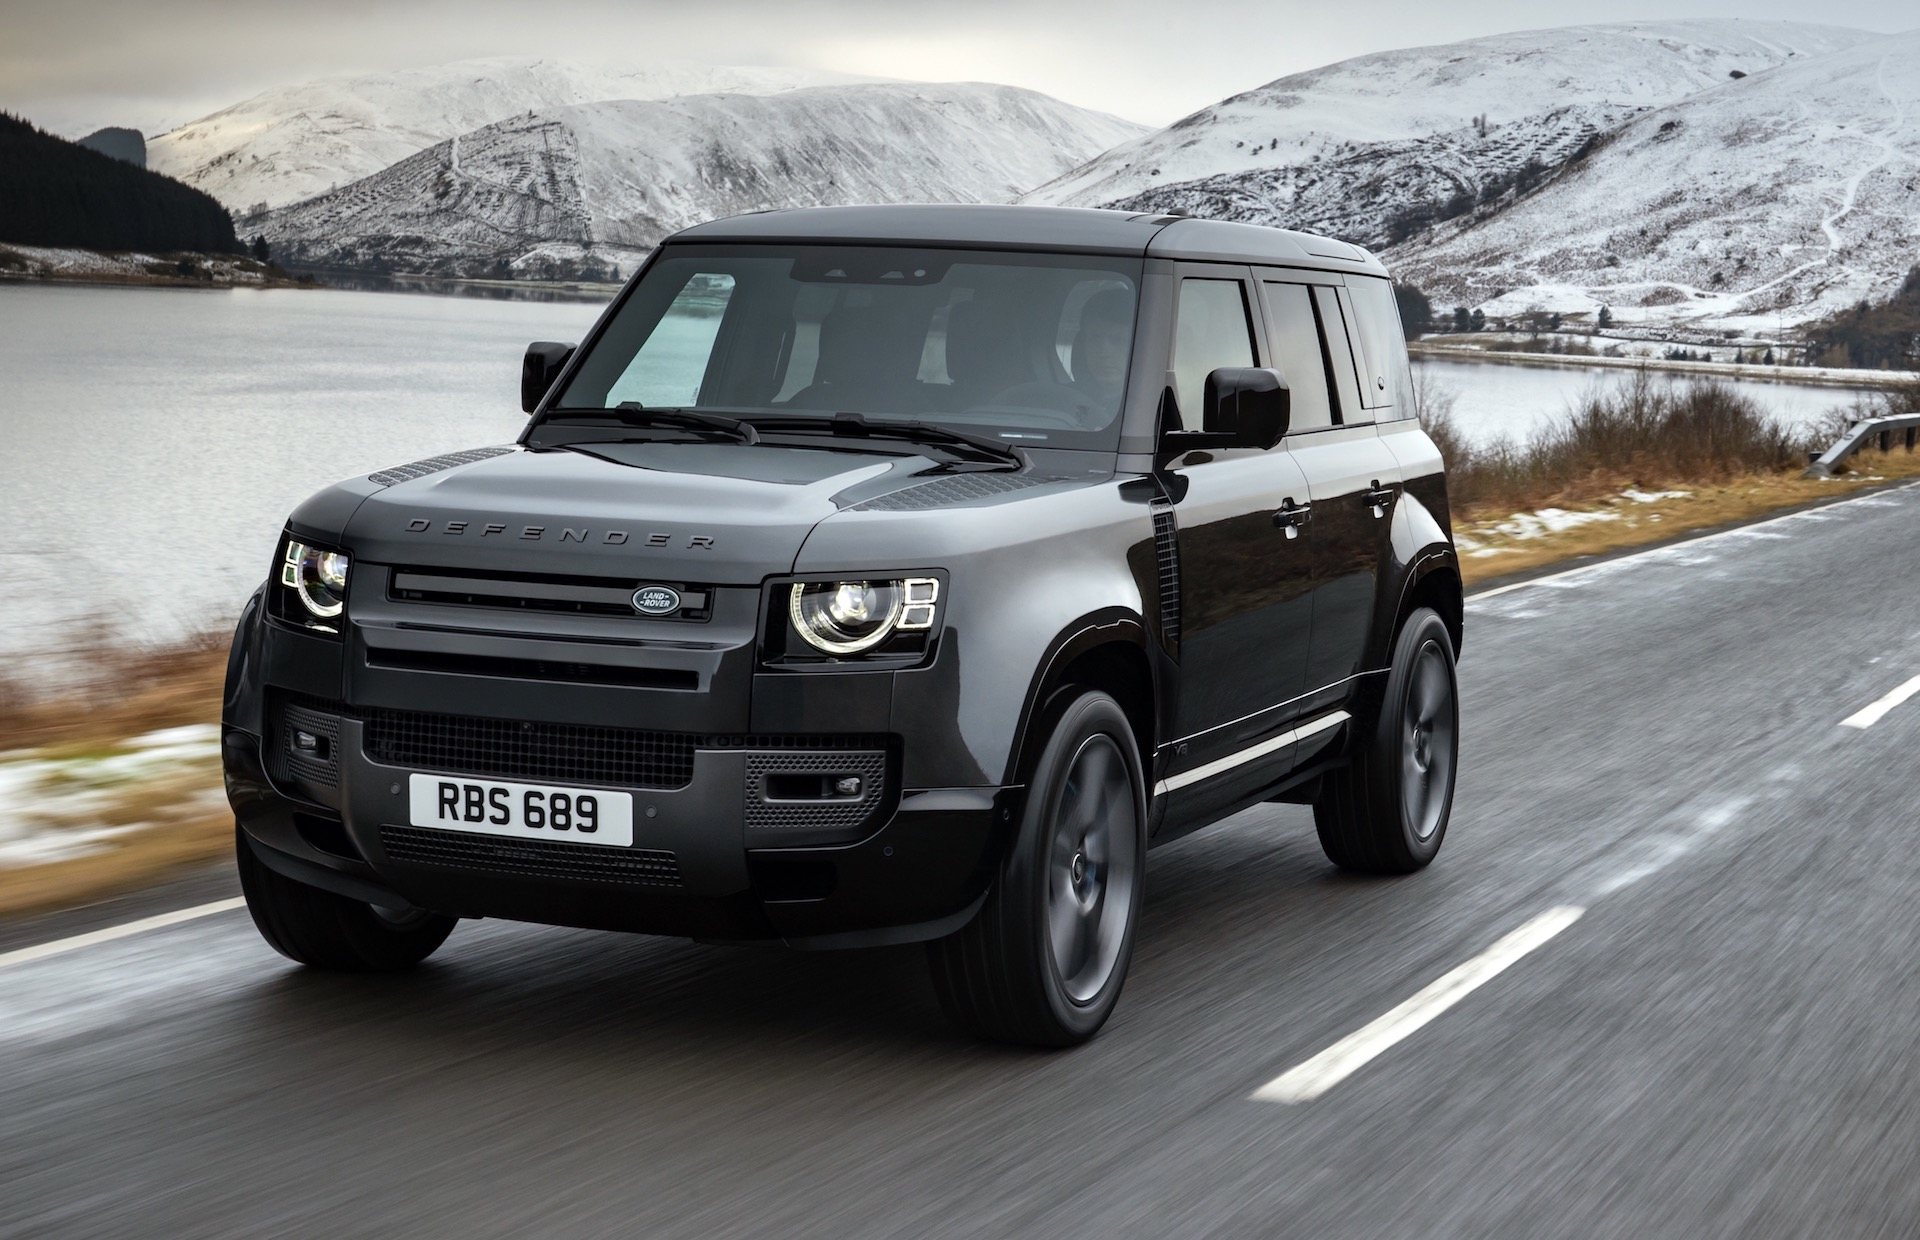 2022 Land Rover Defender P525 supercharged V8 announced